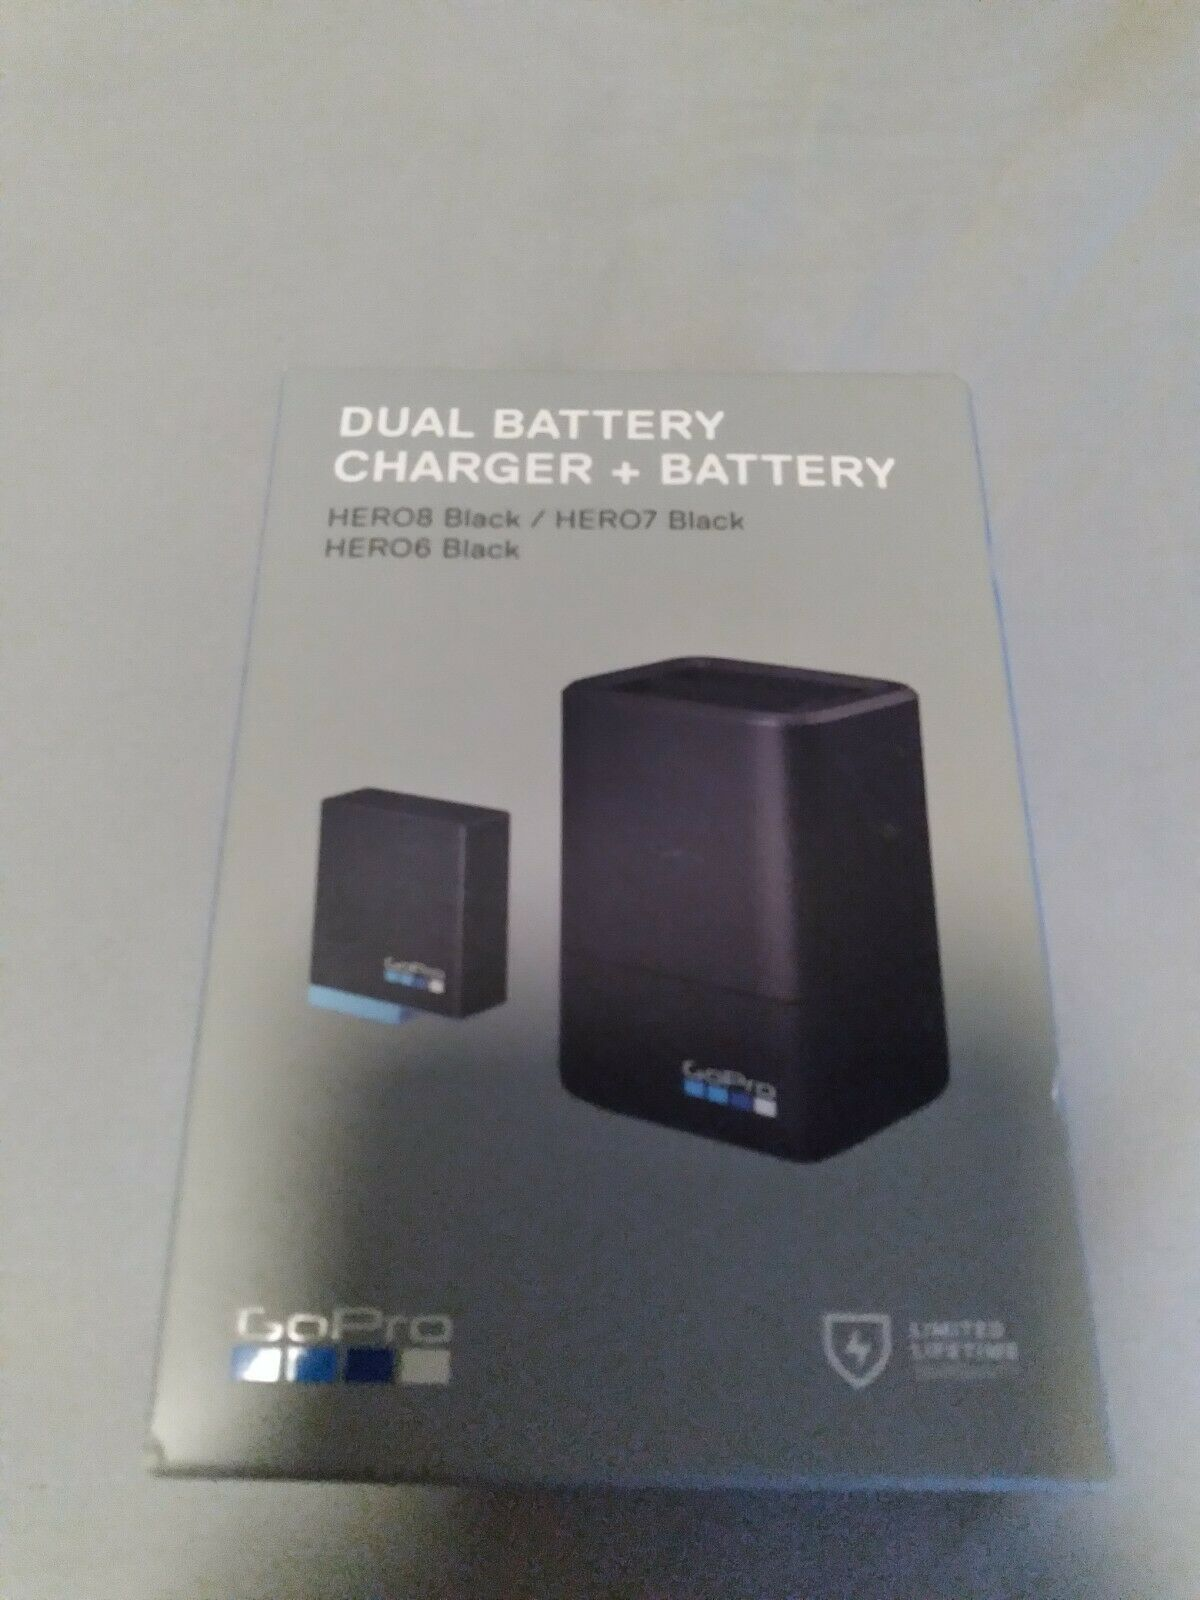 GoPro AJDBD-001 Dual Battery Charger Battery Free Shipping - $38.99